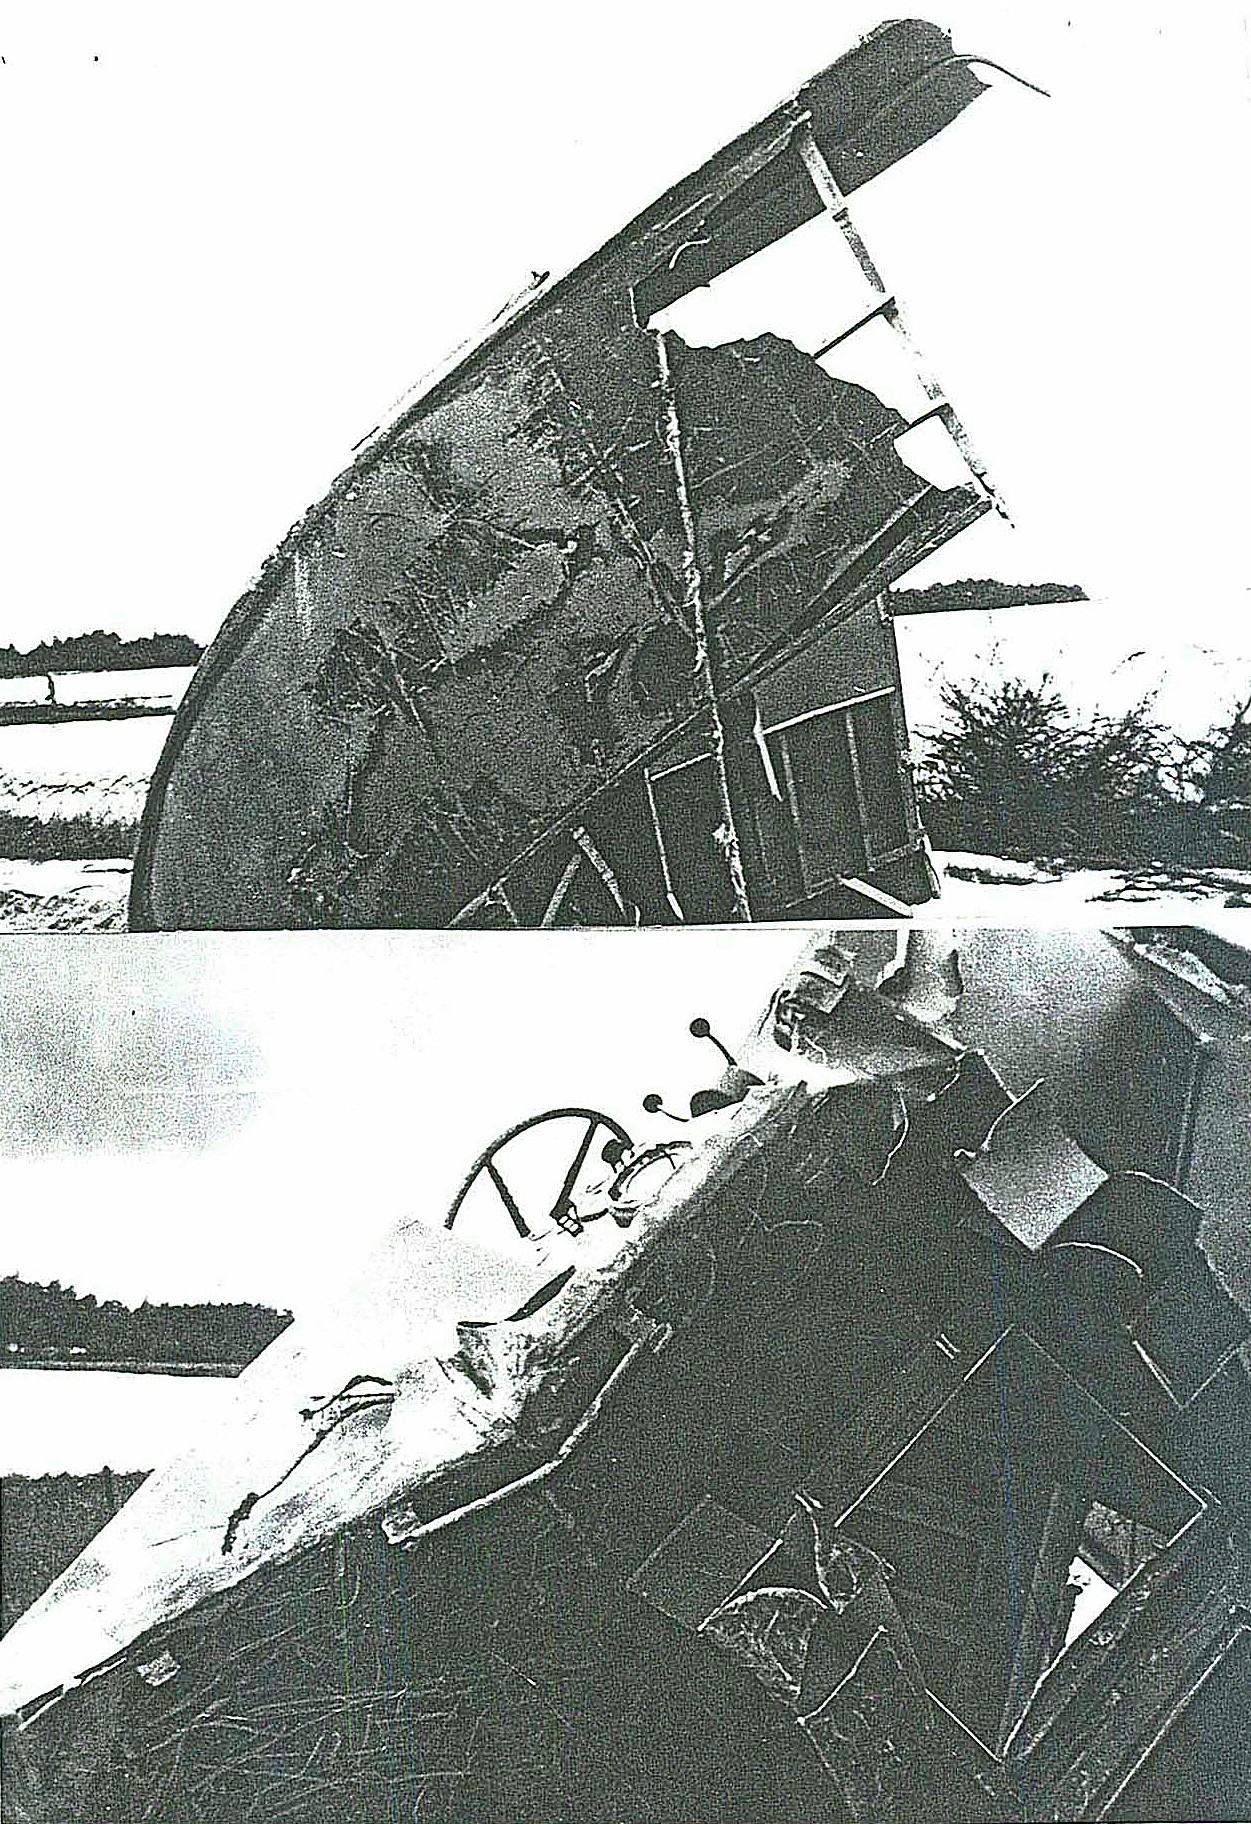 PCF 77 wreckage